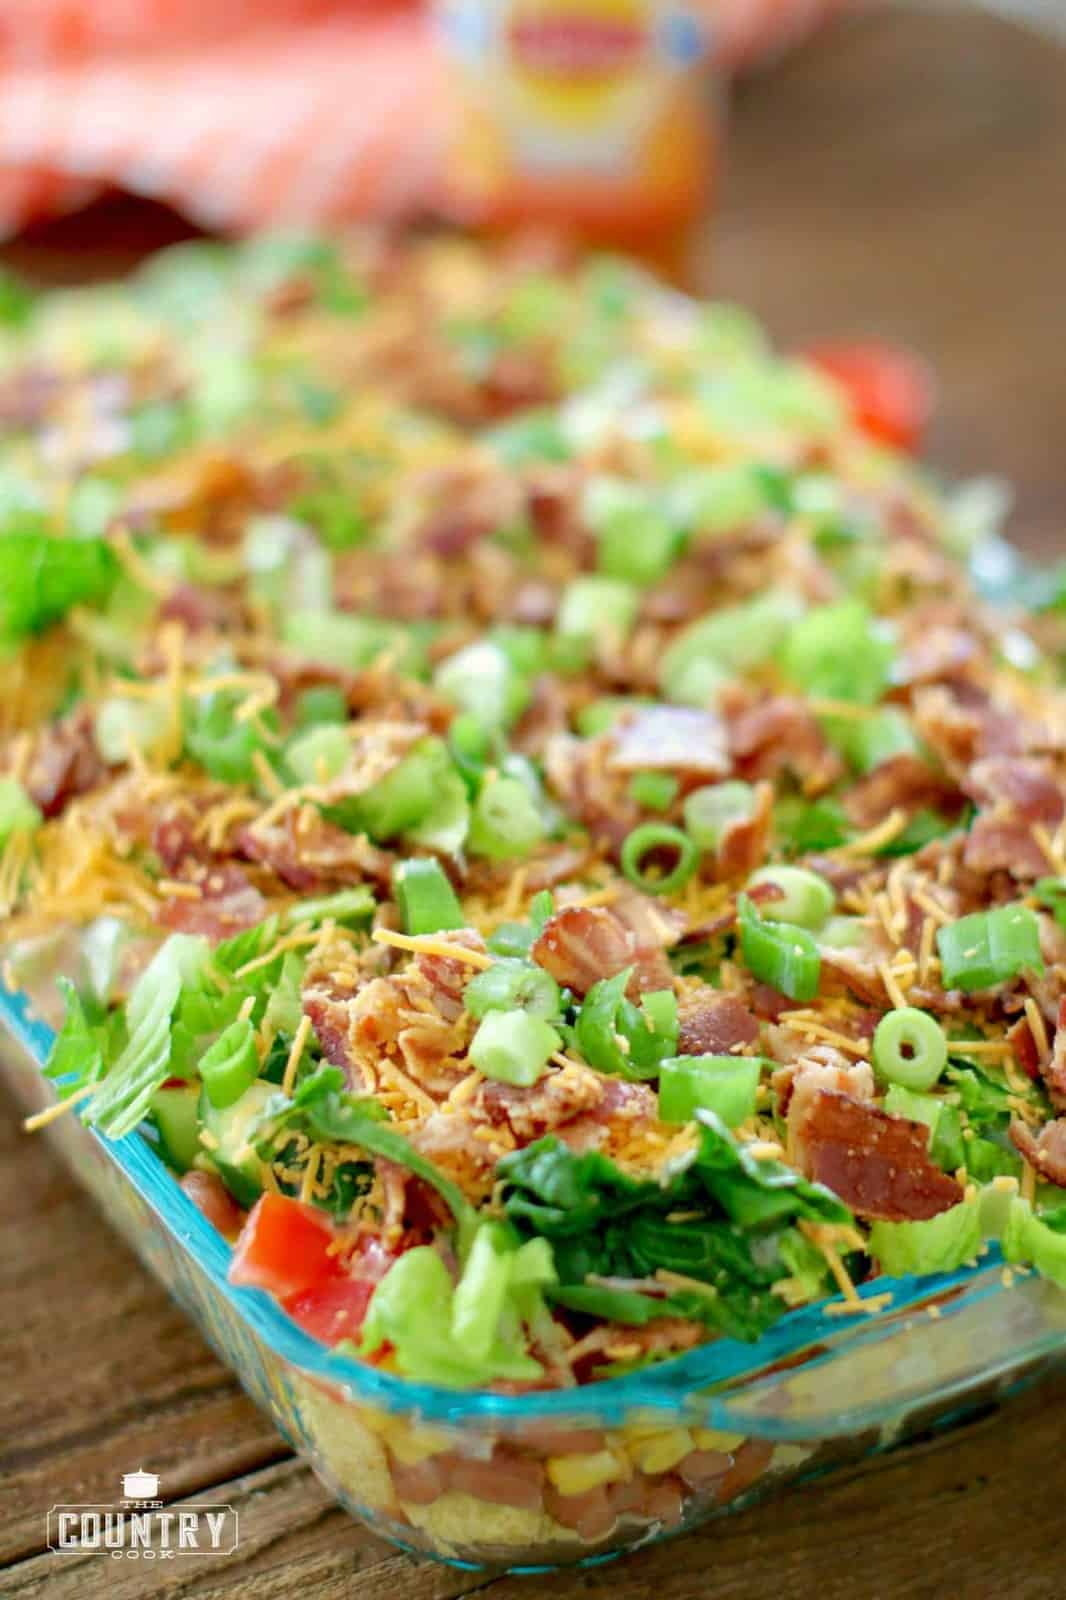 romaine lettuce, chopped bacon and green onions layered at the very top of the cornbread salad in a baking dish.